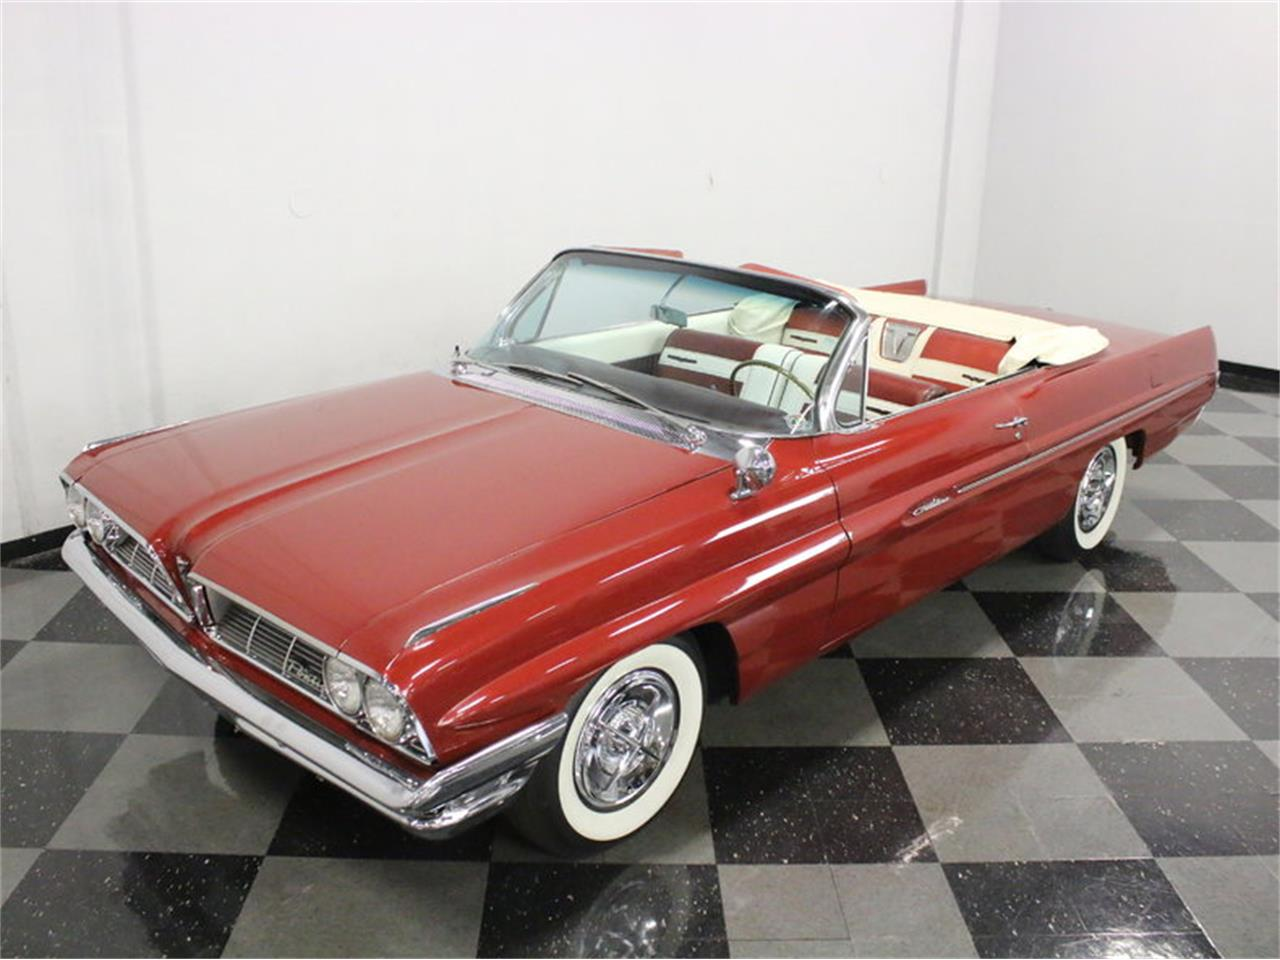 Large Picture of 1961 Pontiac Catalina located in Ft Worth Texas - $31,995.00 Offered by Streetside Classics - Dallas / Fort Worth - L8IM